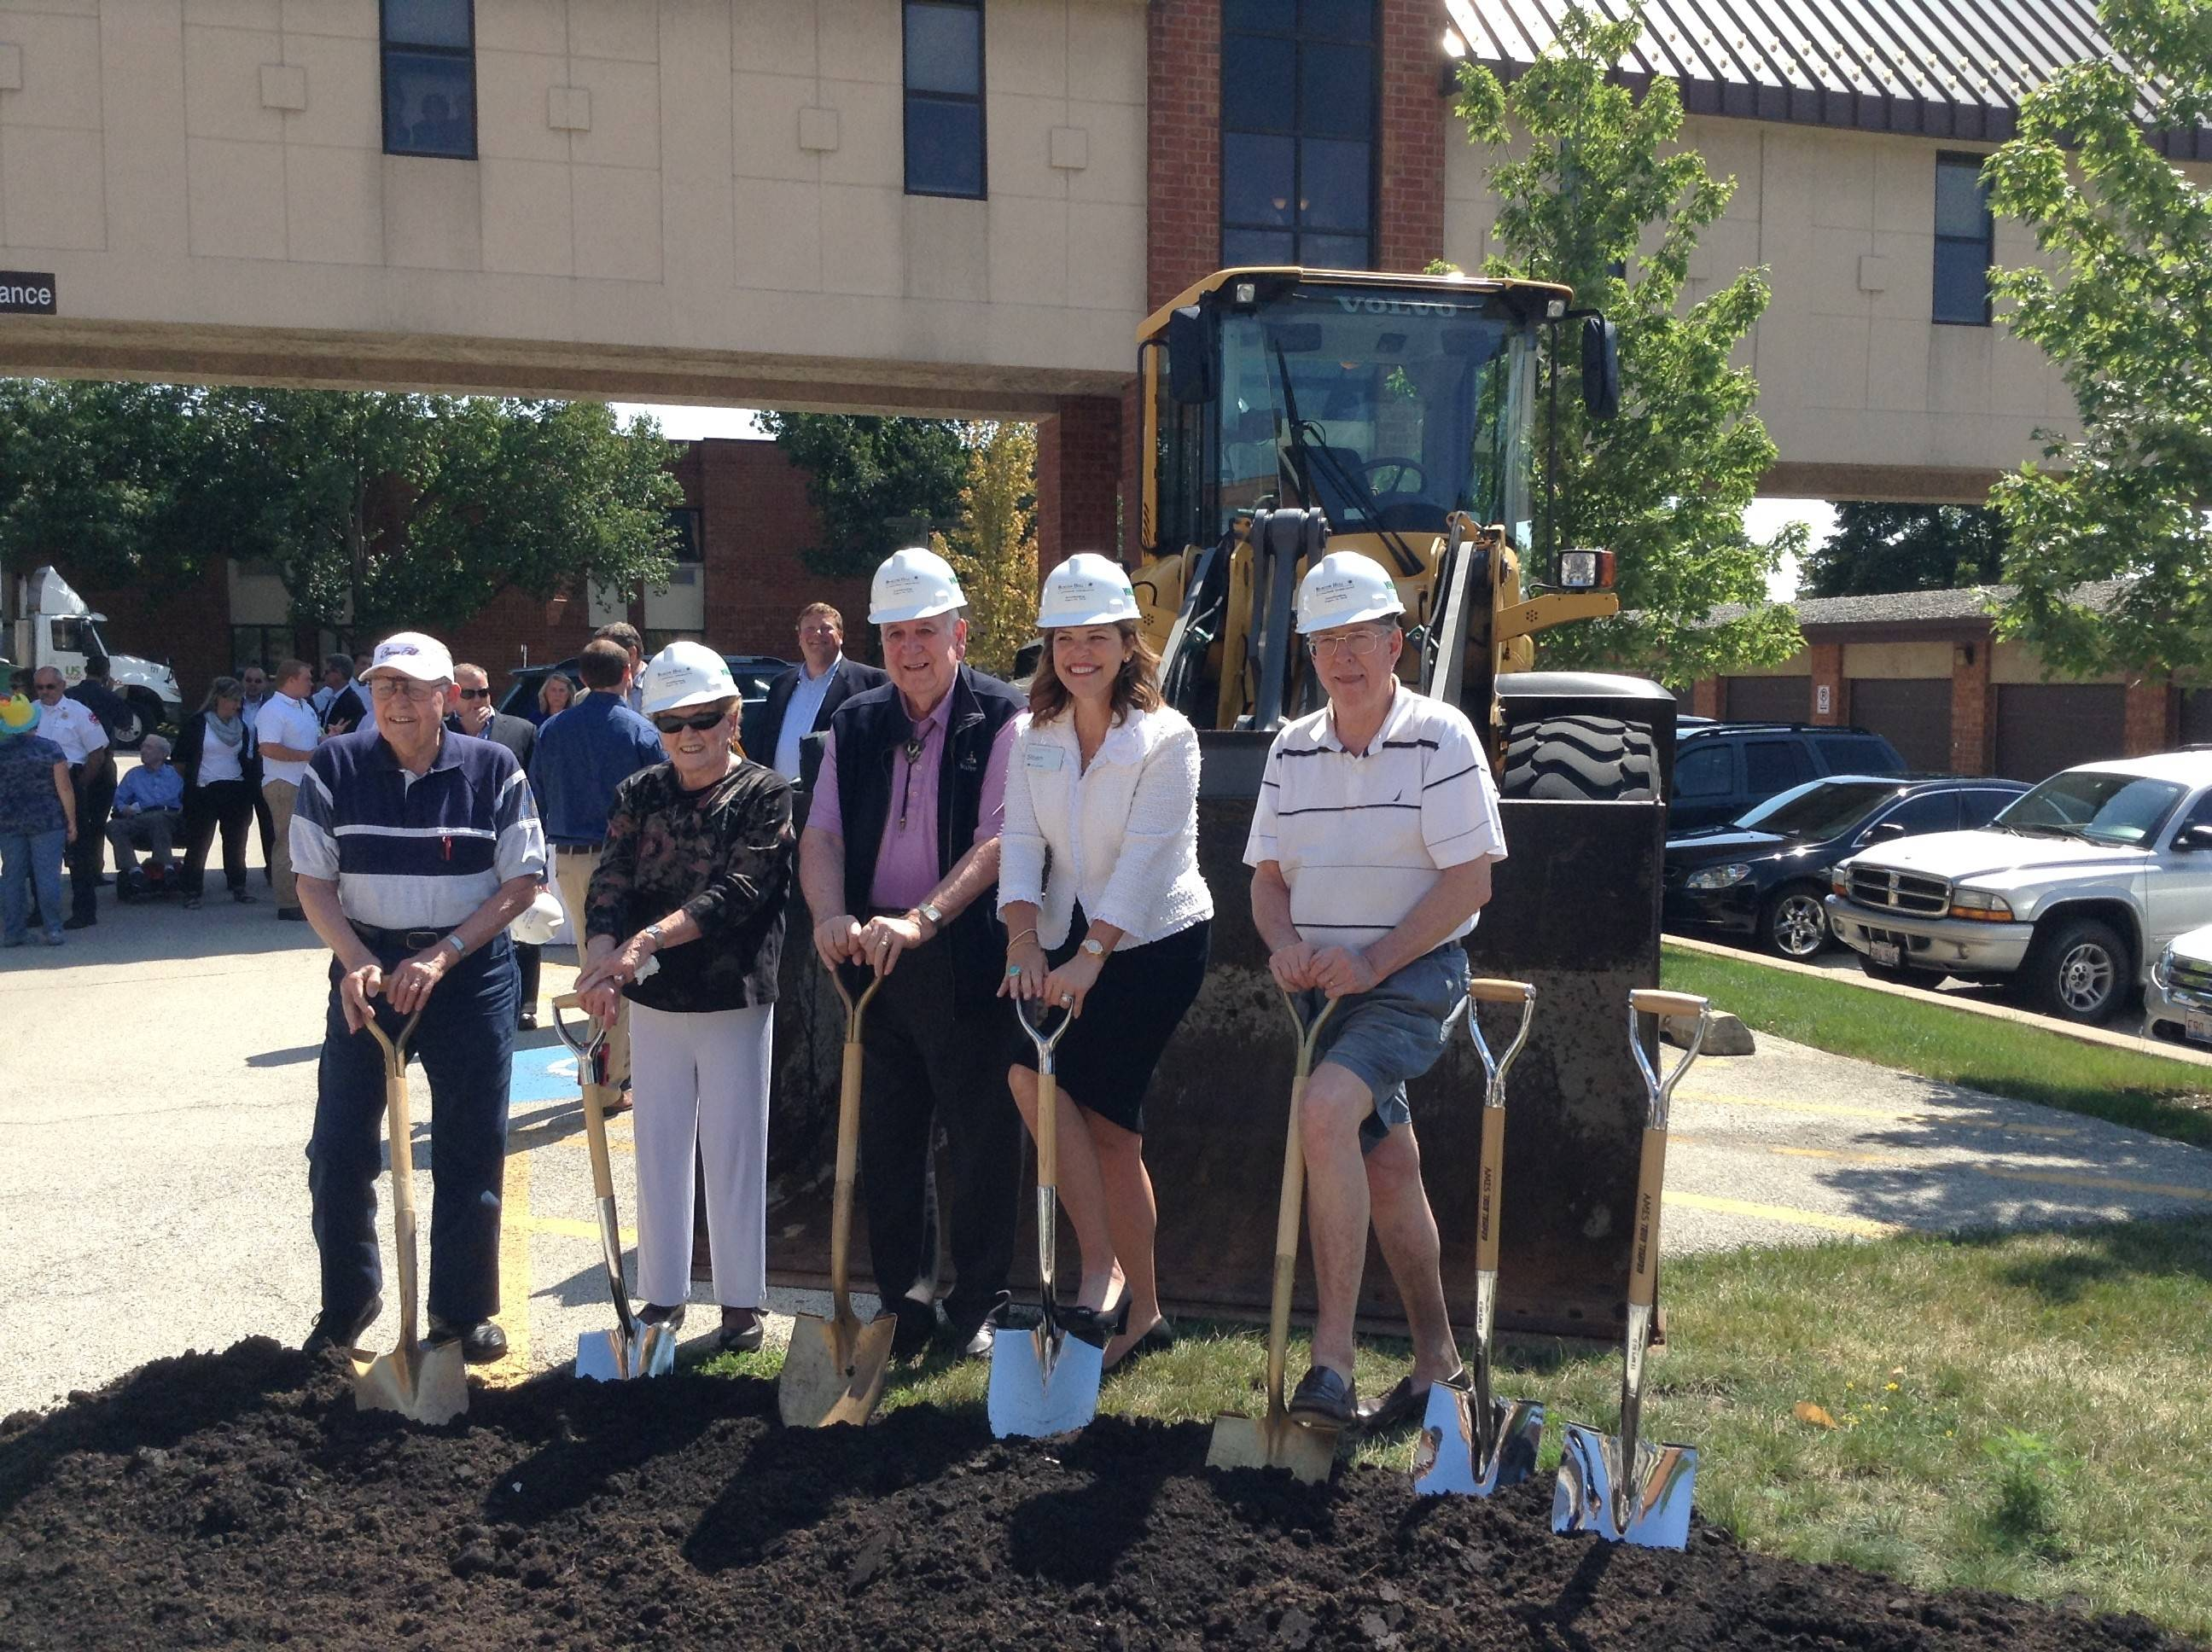 Sloan Bentley, second from right, president and chief executive officer of Lifespace Communities, and some residents take part in a groundbreaking ceremony Wednesday for a $15 million expansion at Beacon Hill senior living community in Lombard.